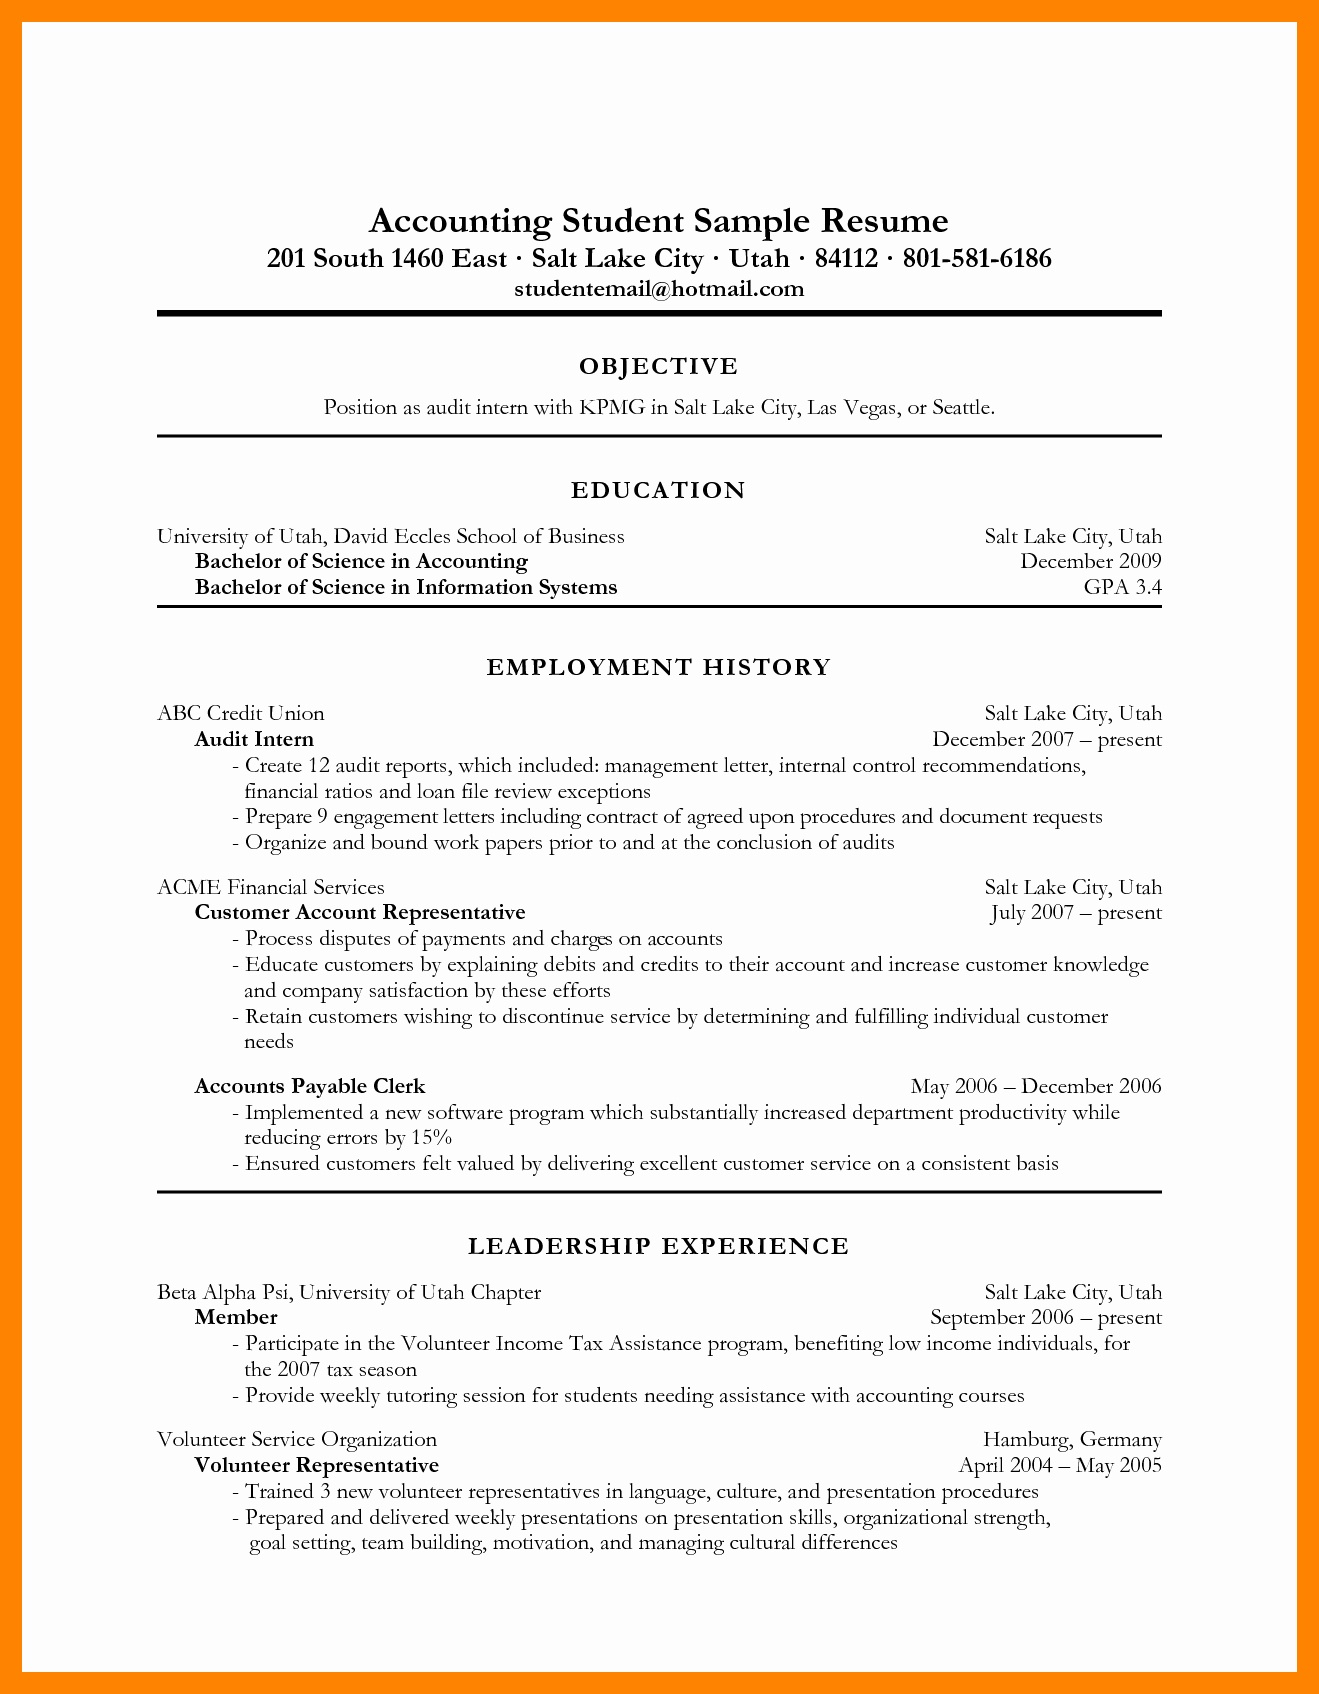 Tax Preparer Resume Samples - Tax Preparer Resume Example Inspirational Sample Resume for Tax